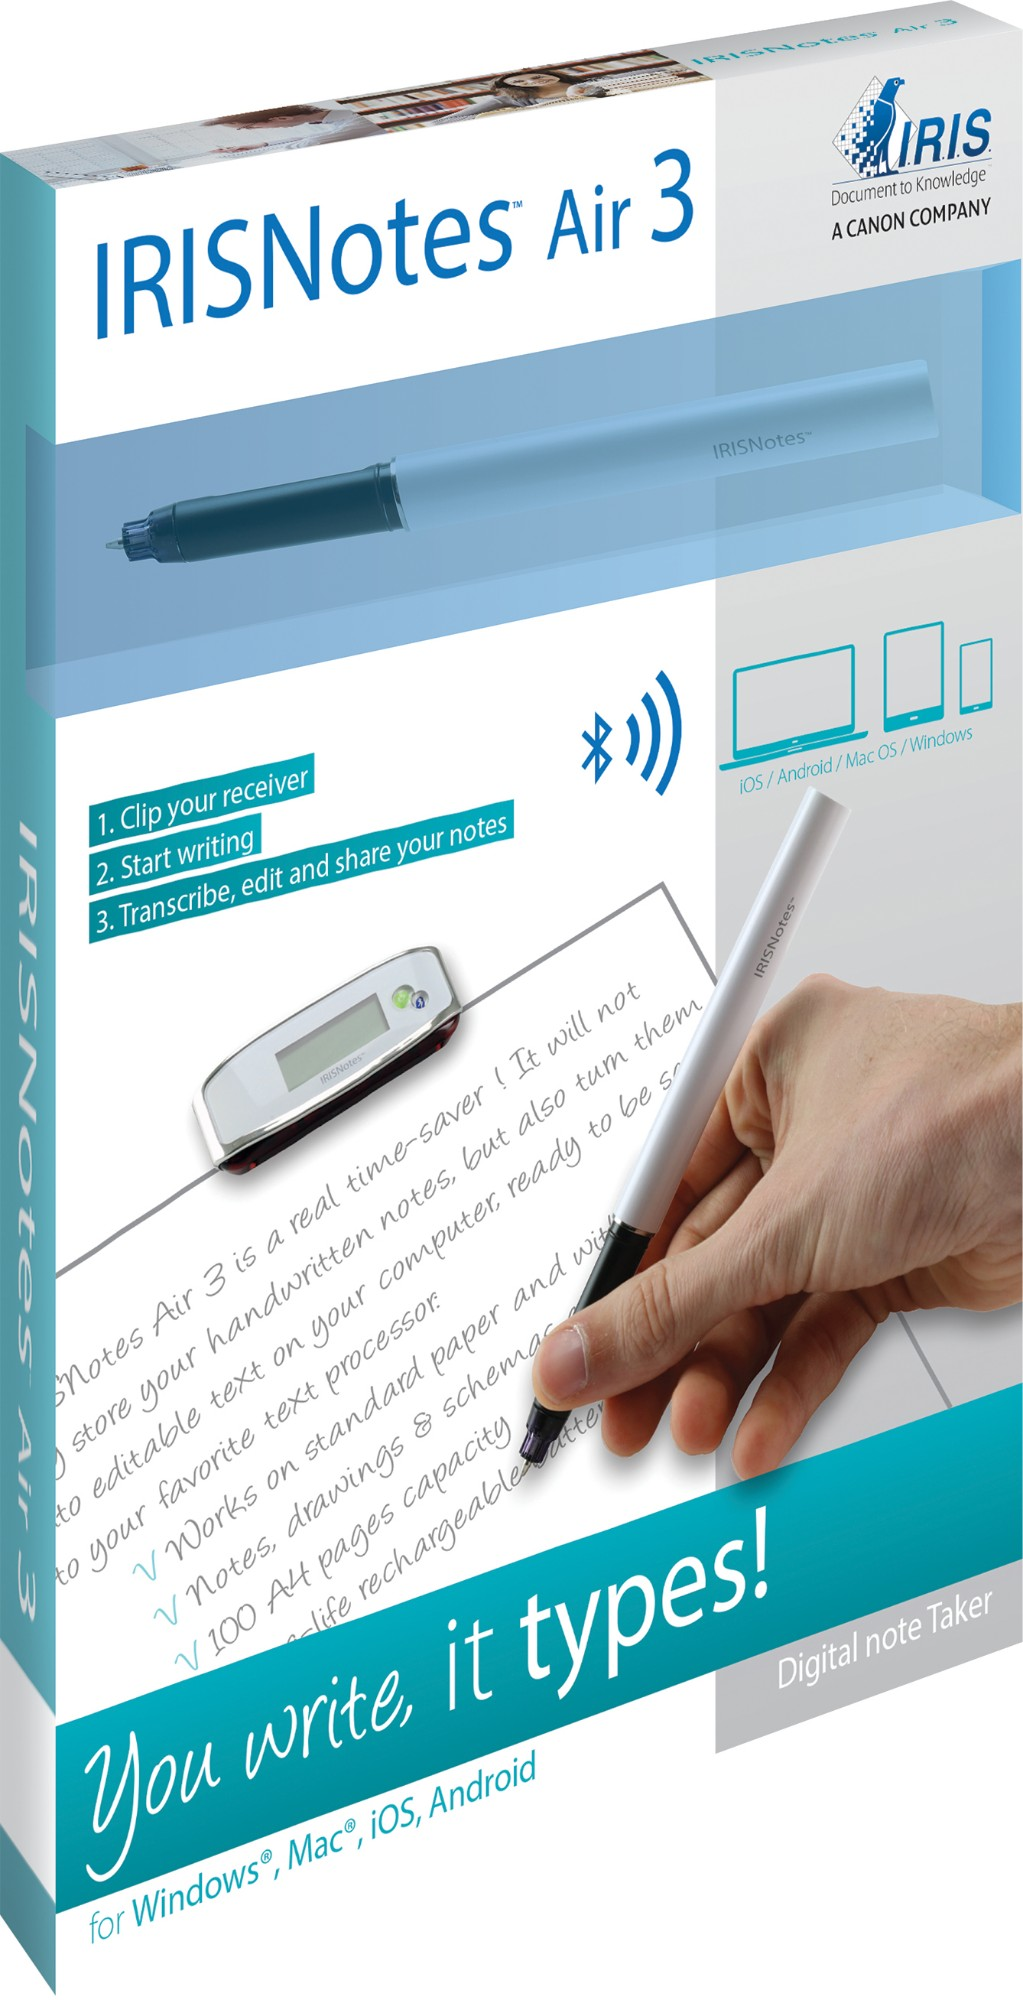 I.R.I.S. IRISNotes Air 3 100sheets A4 digital pen, 38 in distributor ...